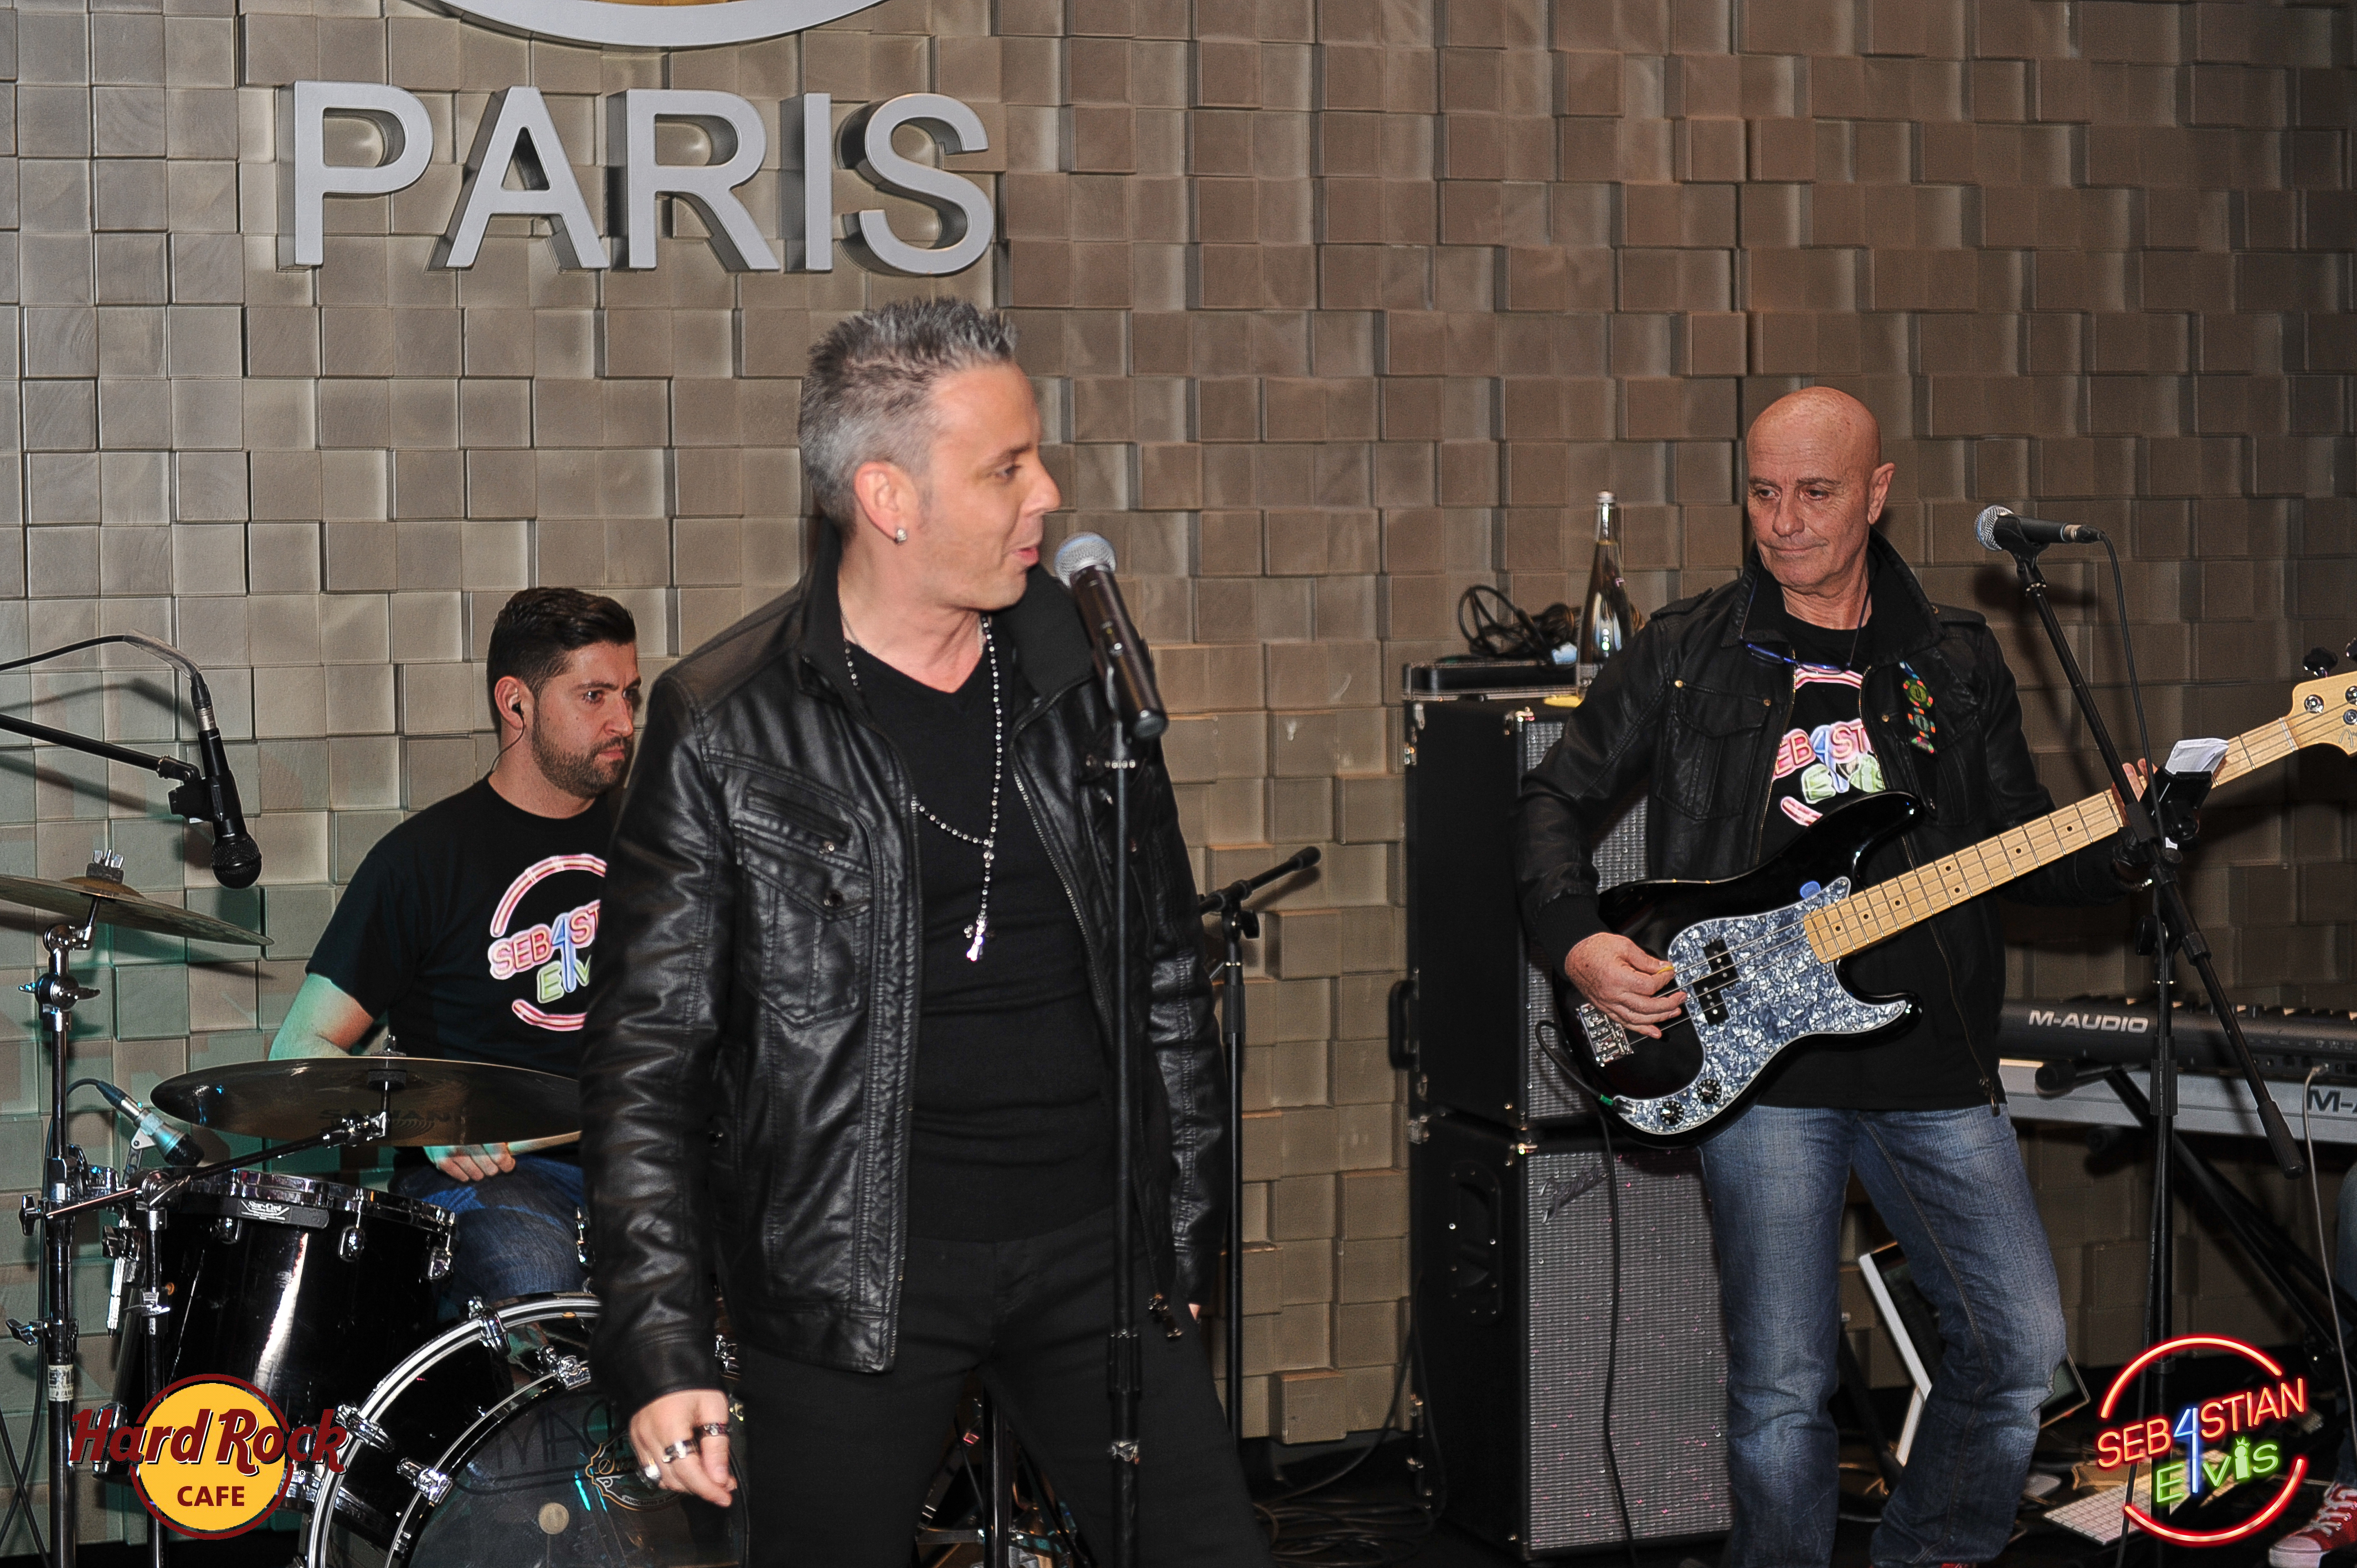 hard-rock-cafe-paris-elvis-night-27 janvier-2016-sebastian-for-elvis-facebook-memorial-show-0048